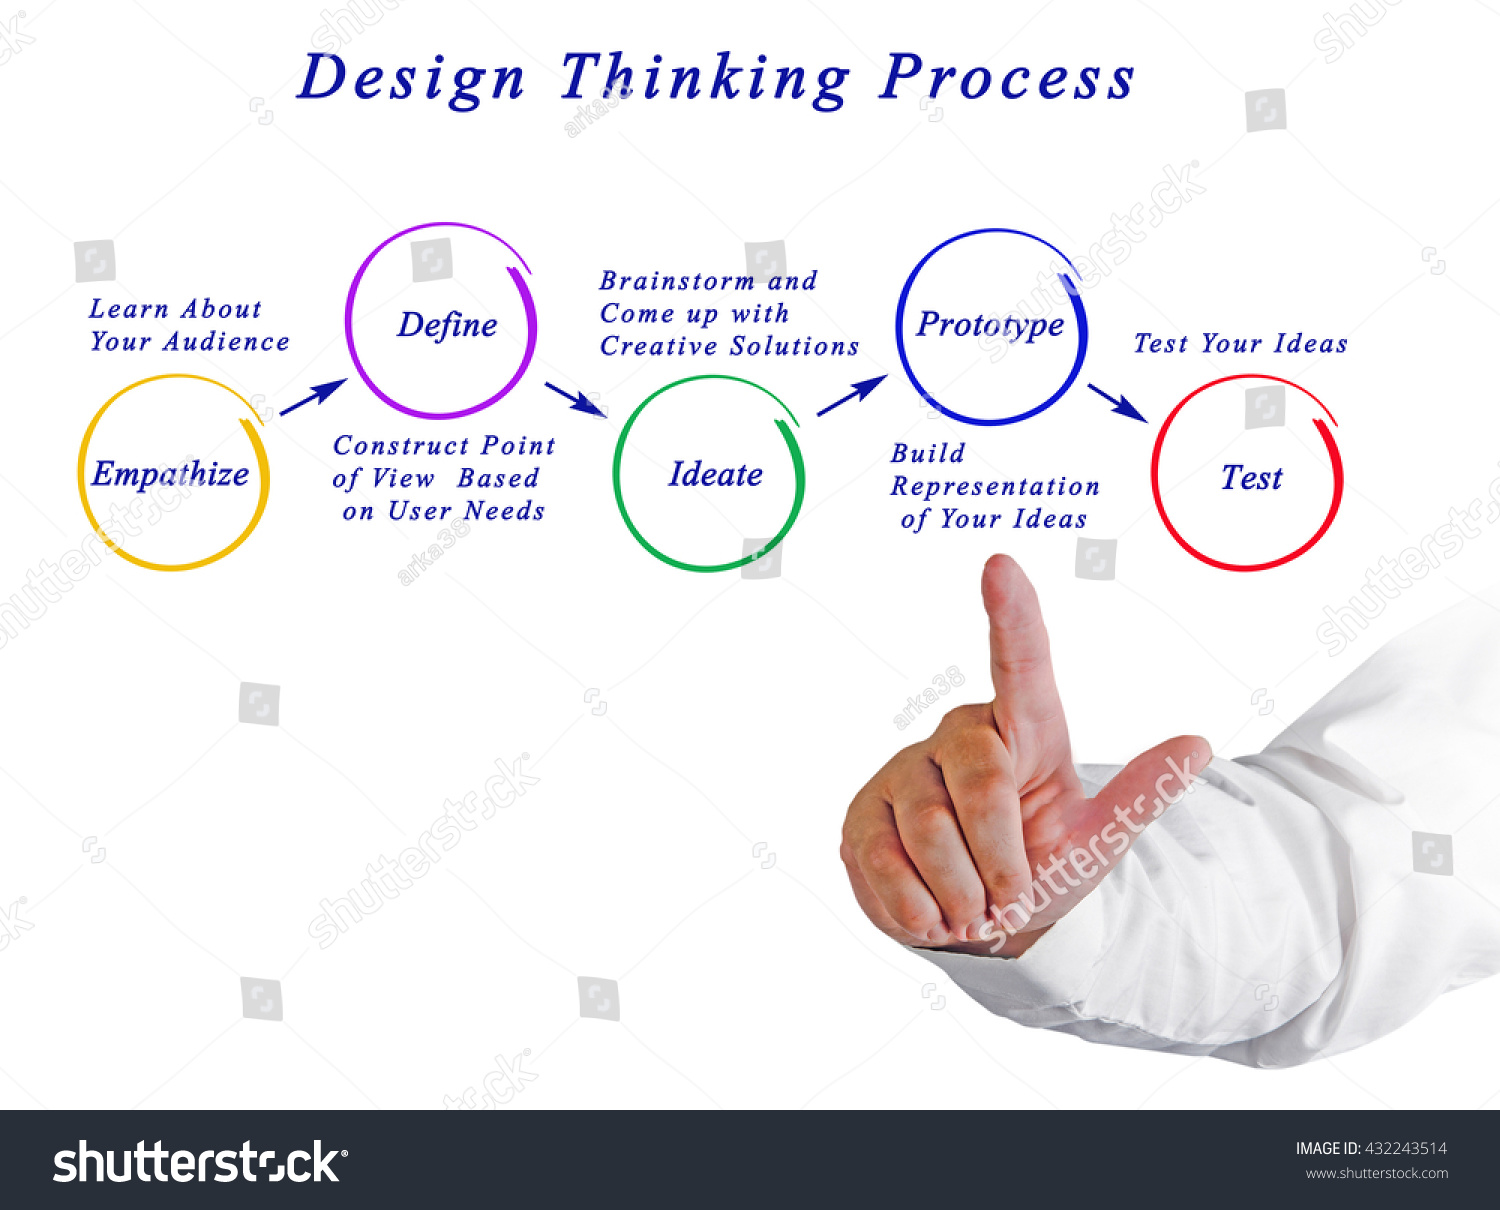 Diagram design thinking process stock photo 432243514 shutterstock diagram of design thinking process pooptronica Image collections